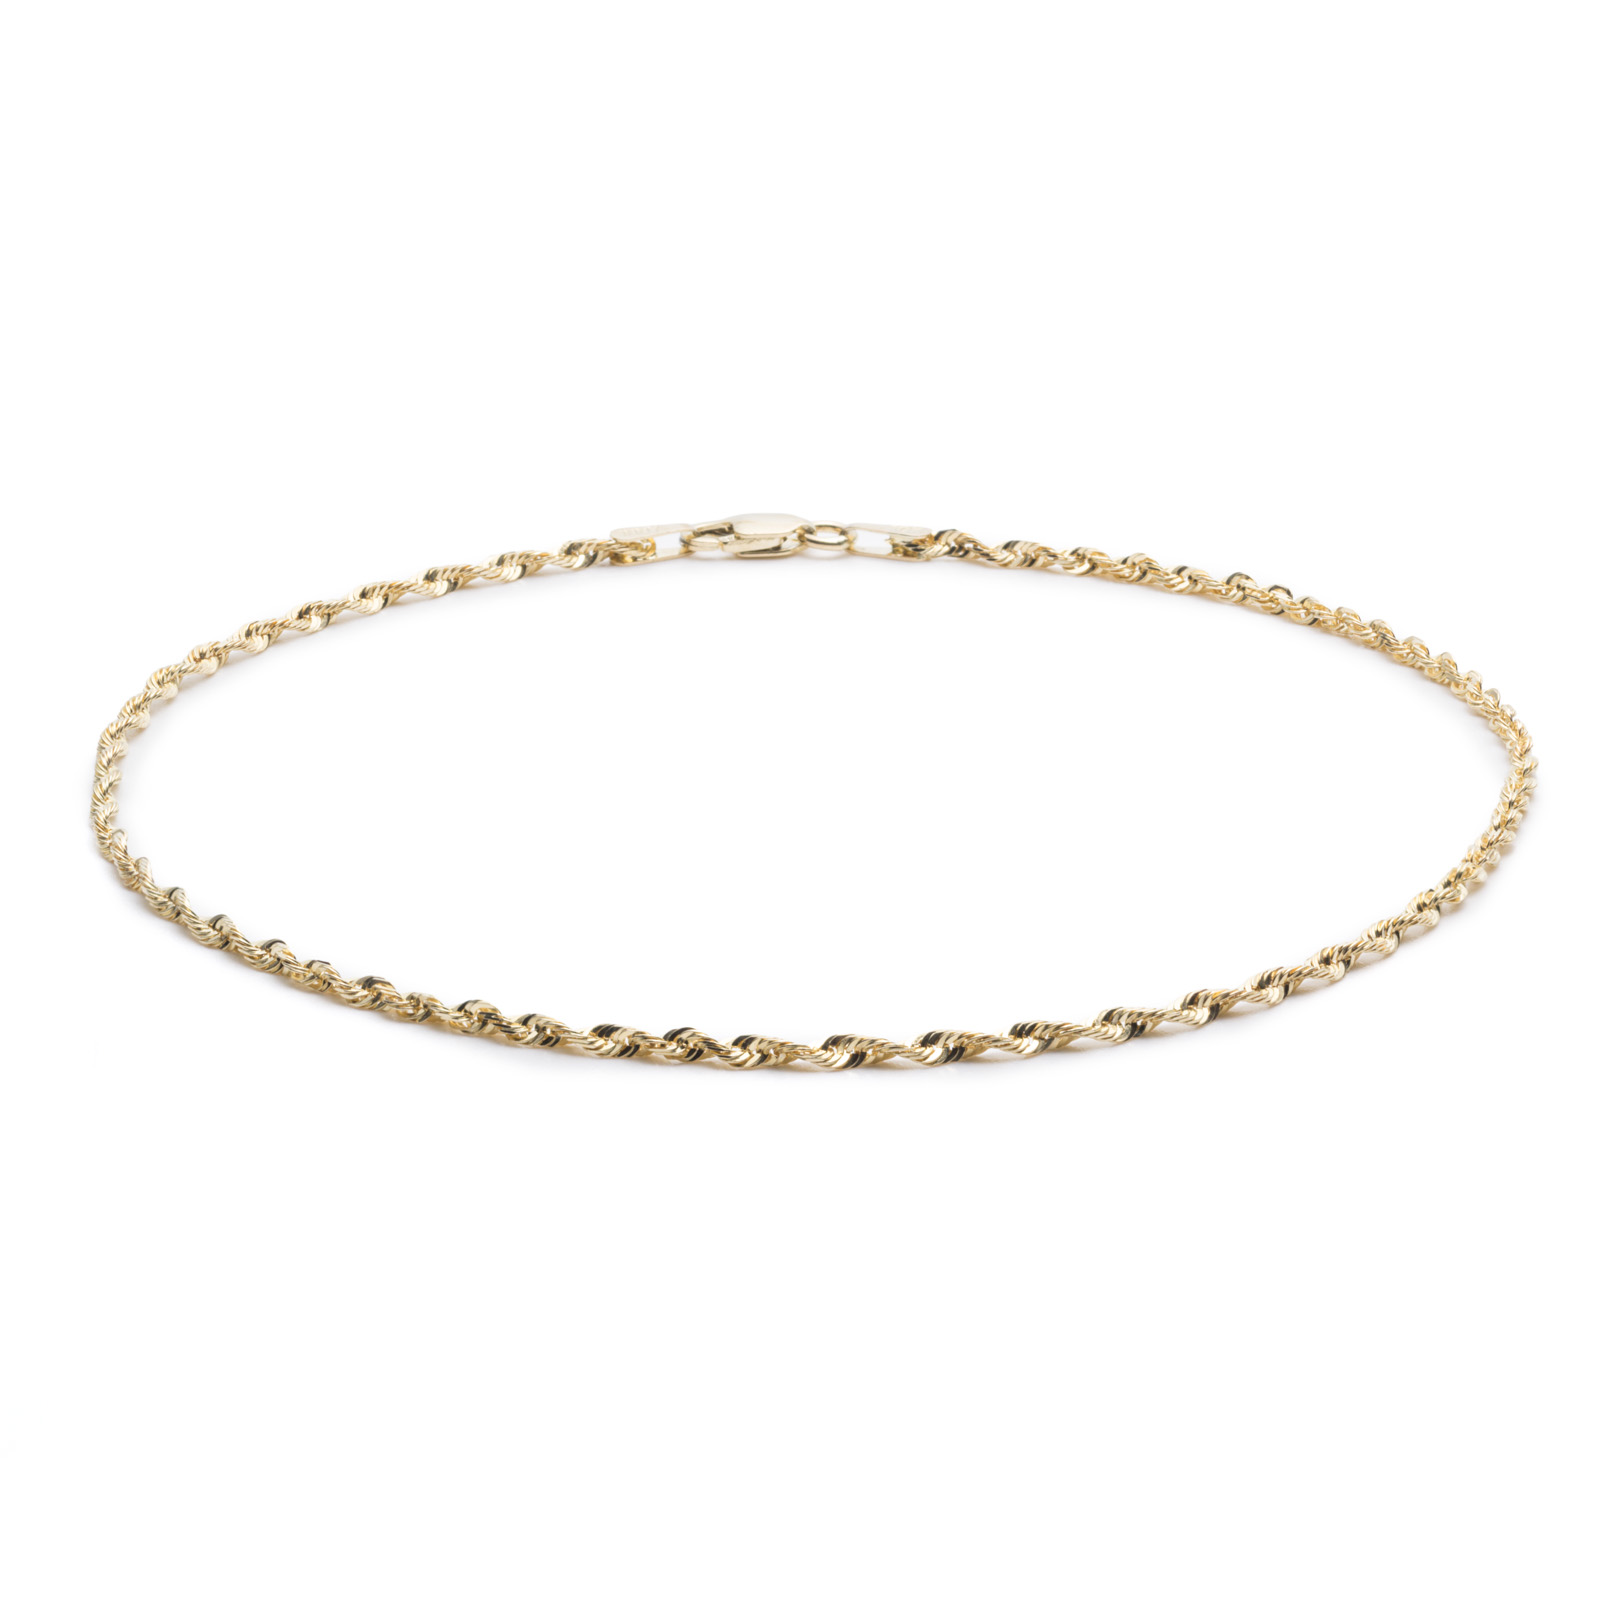 10k Yellow Gold Solid Extra Light Diamond Cut Rope Chain Bracelet and Anklet for Men and Women, 2mm by Glad Gold